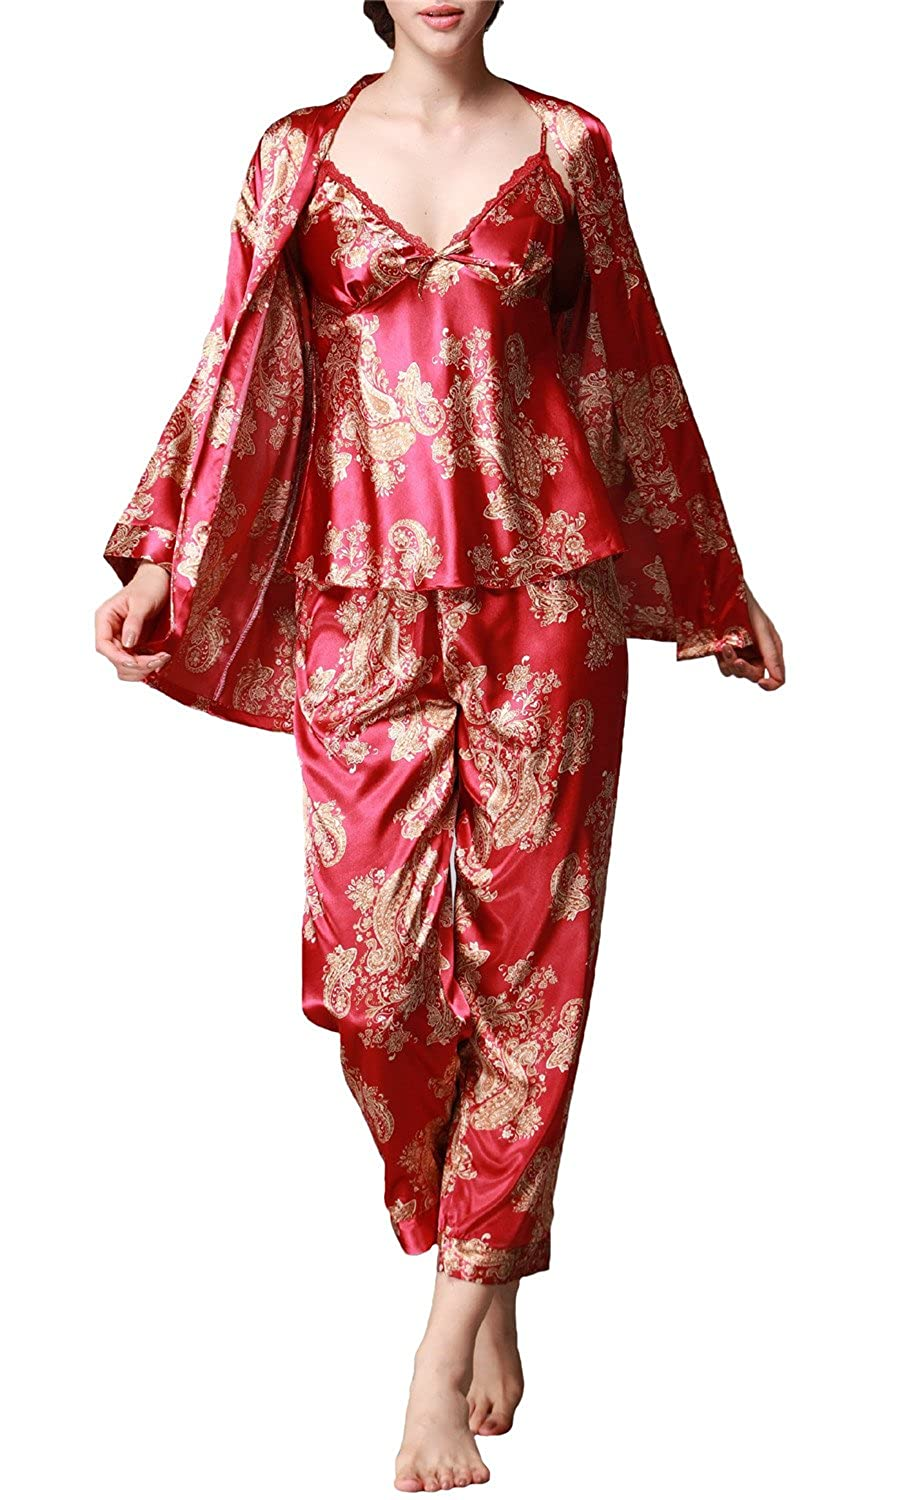 Jusfitsu Women Classic Long Sleeve Printed Satin Silk Pyjamas Set Nightwear Sleepwear Loungewear